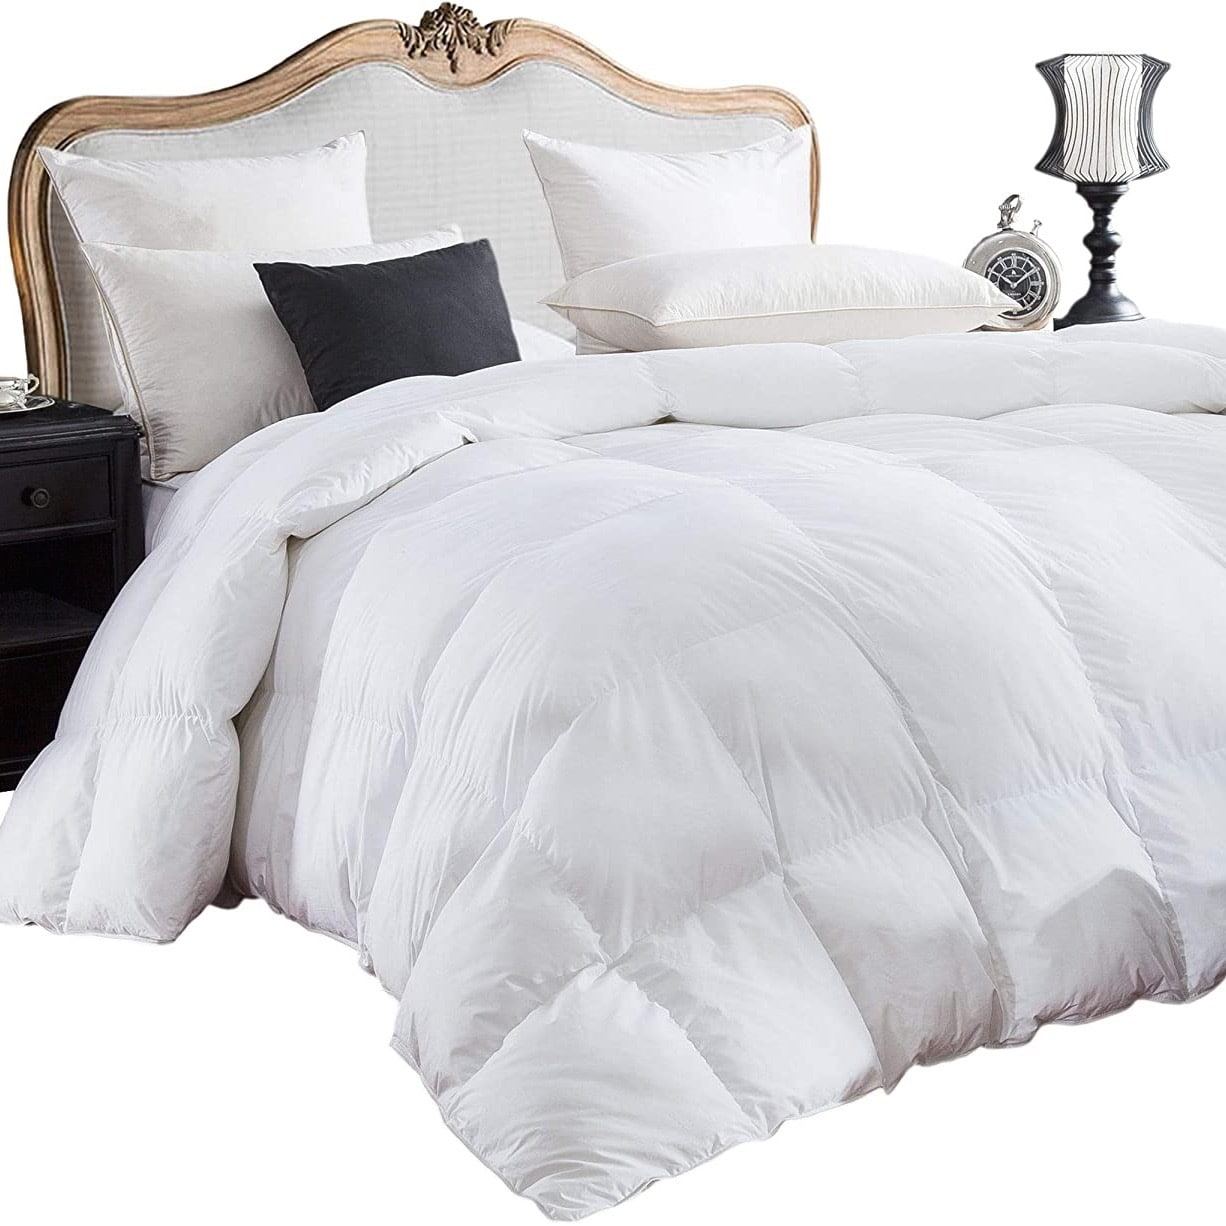 Best Comforters - Egyptian Bedding